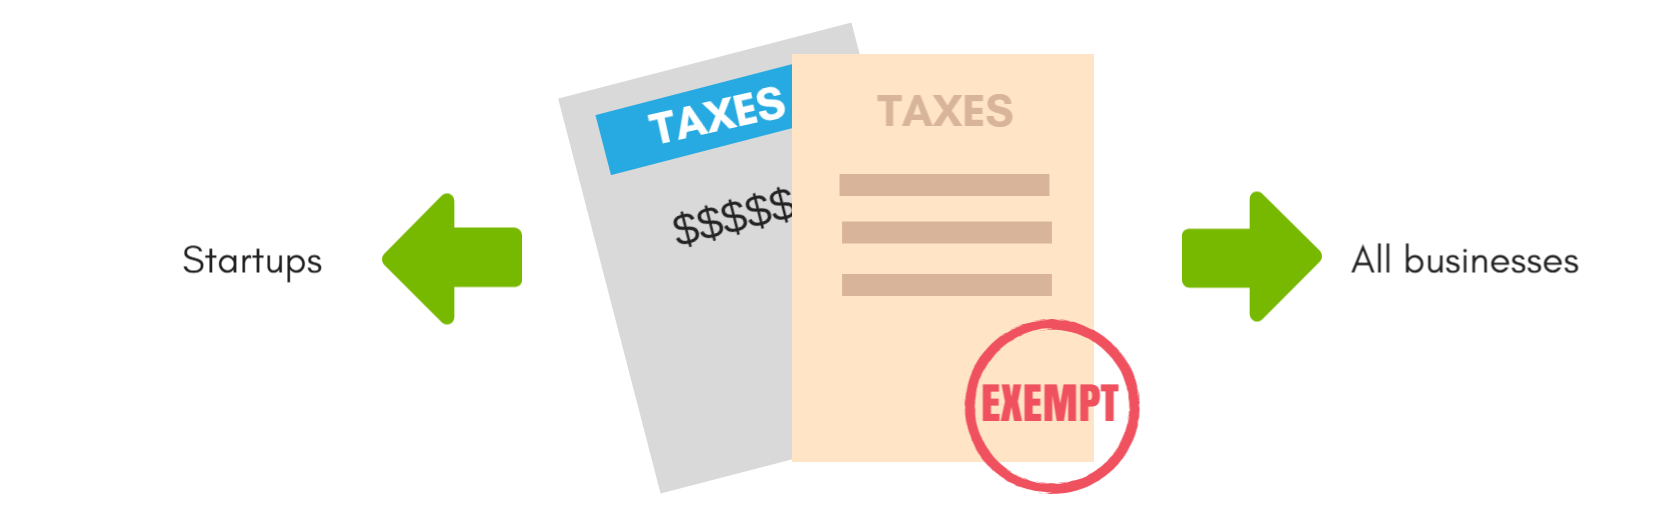 tax exemptions.png